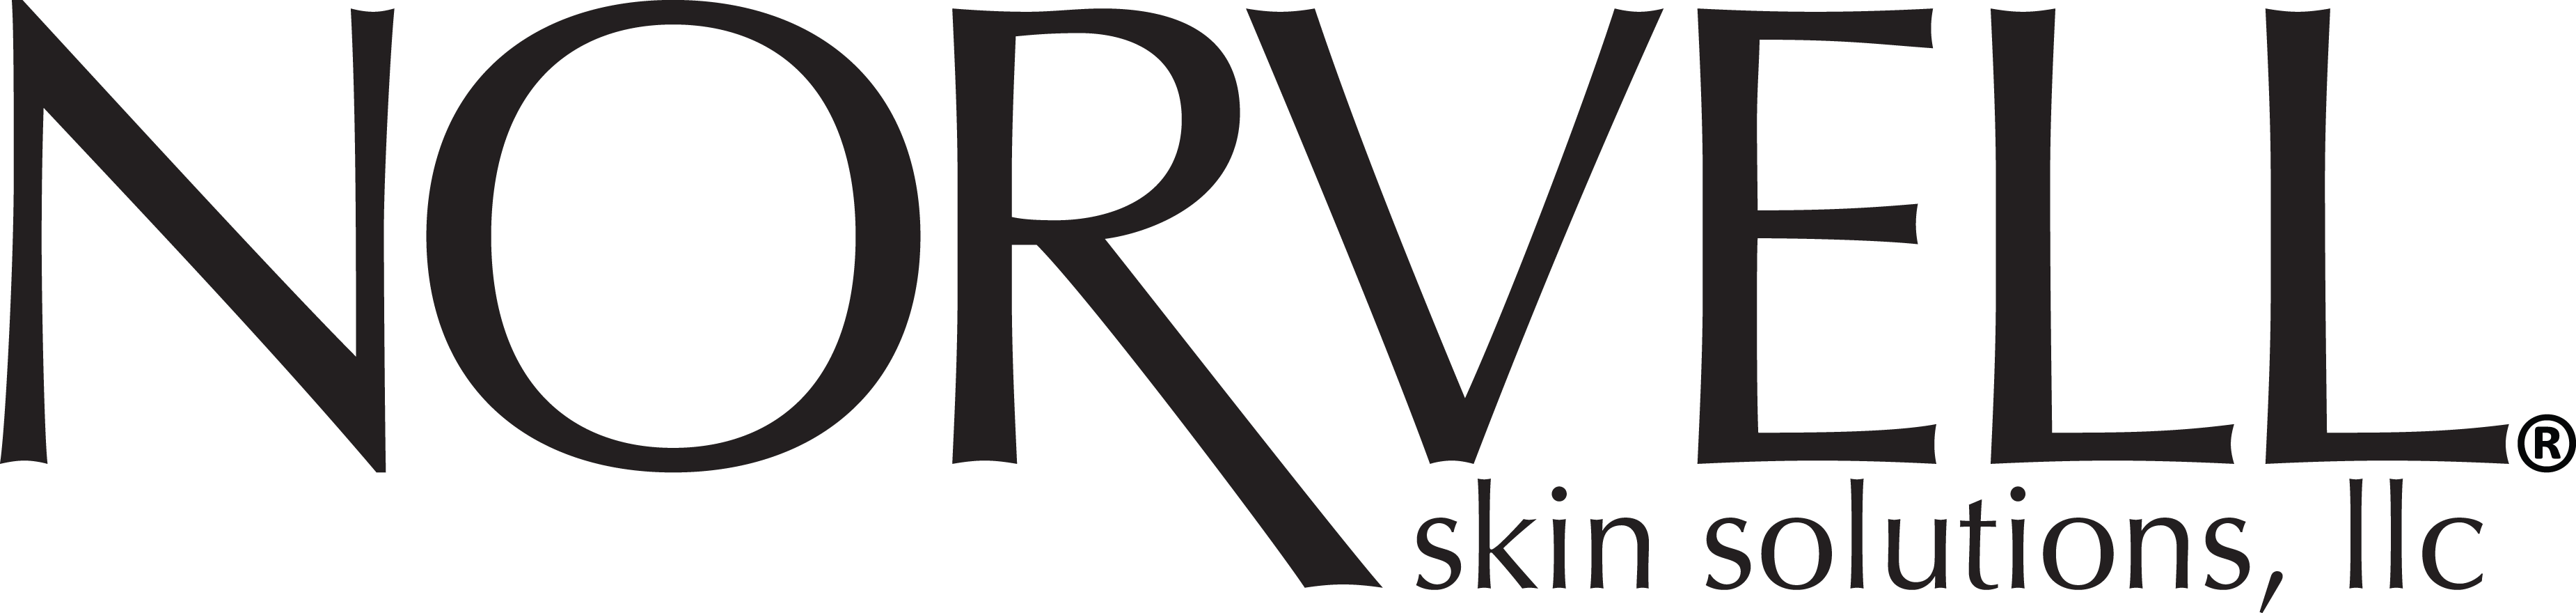 norvell-skin-solutions-llc-logo-1-.png